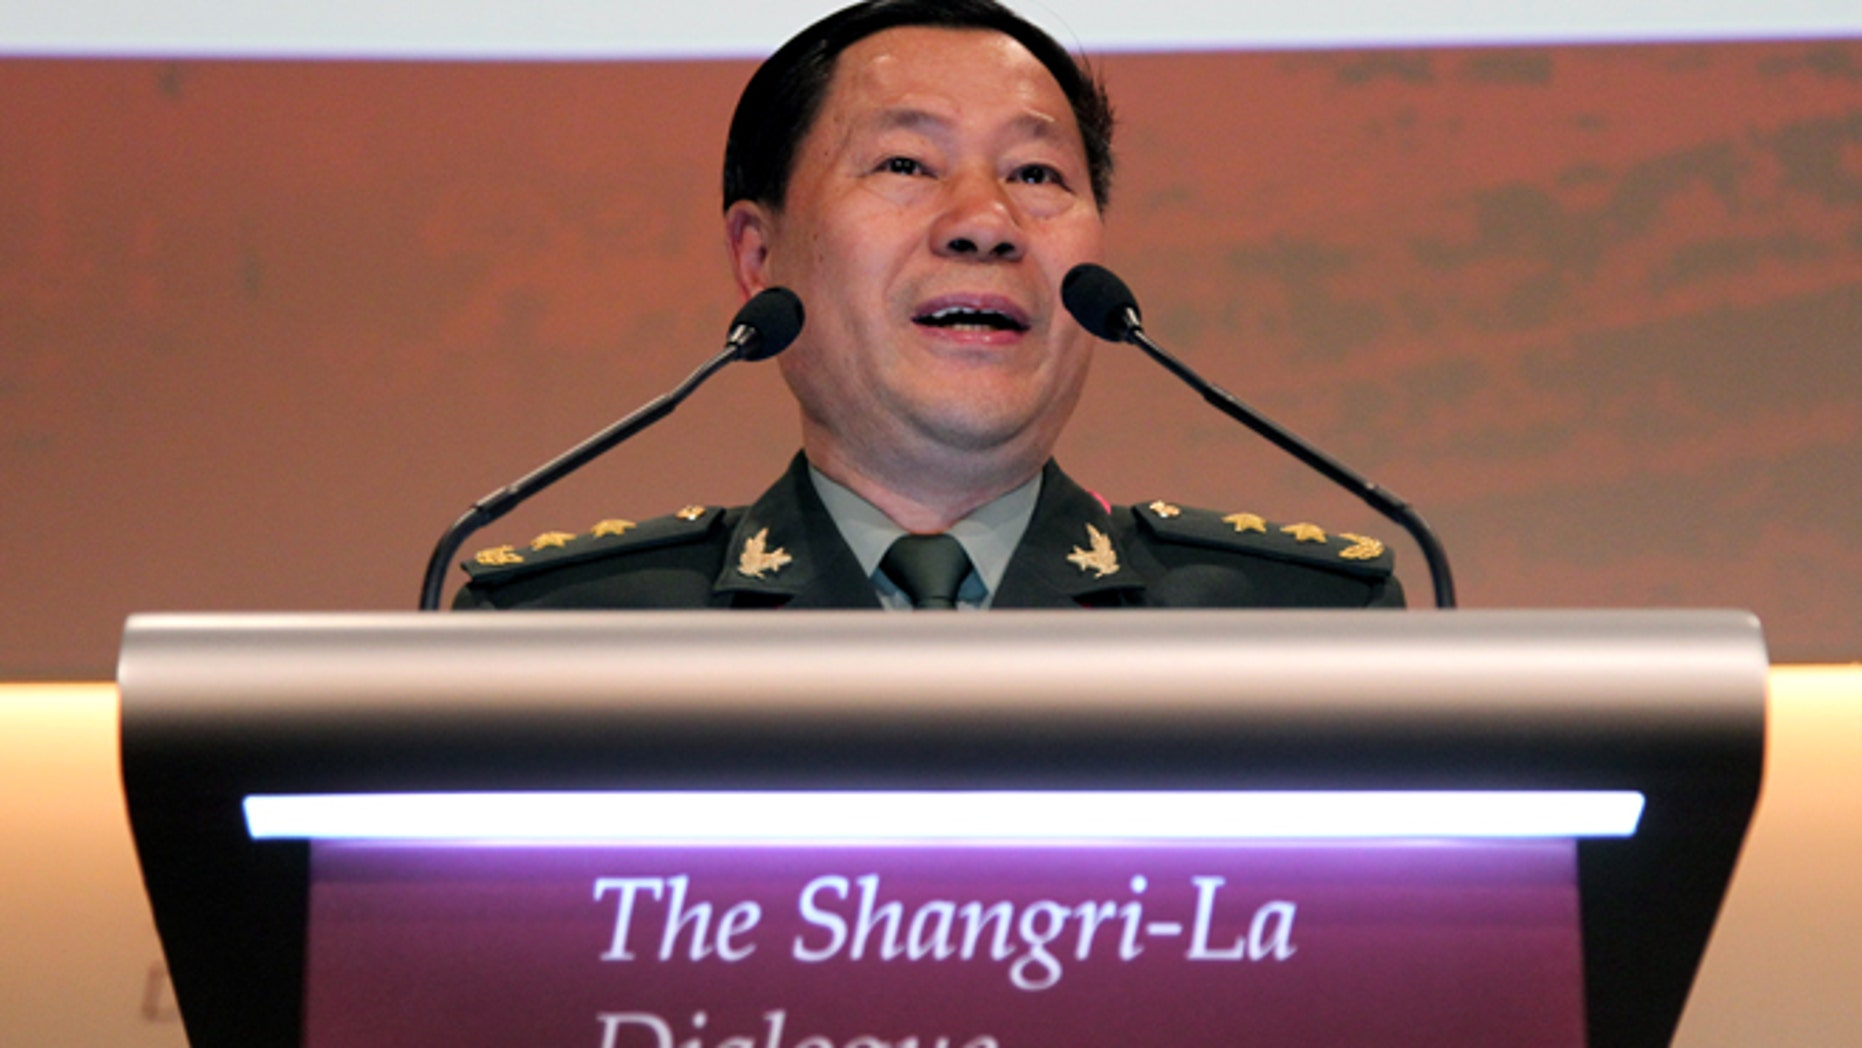 June 2, 2013: China's Lt. Gen. Qi Jianguo, Deputy Chief of General Staff, Peoples Liberation Army, delivers his speech at the  International Institute for Strategic Studies Shangri-la Dialogue, or IISS Asia Security Summit in Singapore.